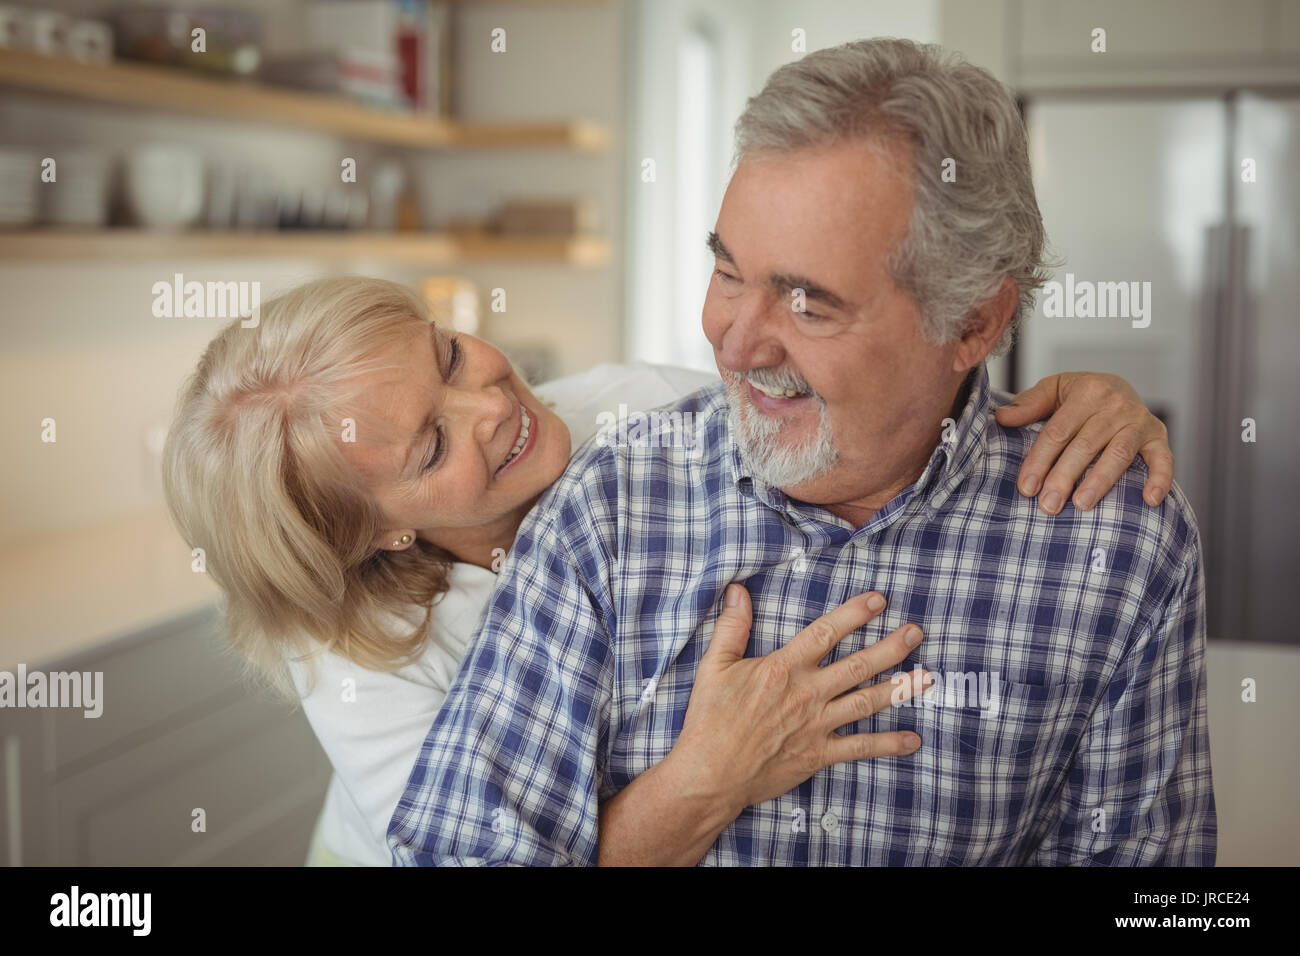 Senior couple hugging each other at home Stock Photo